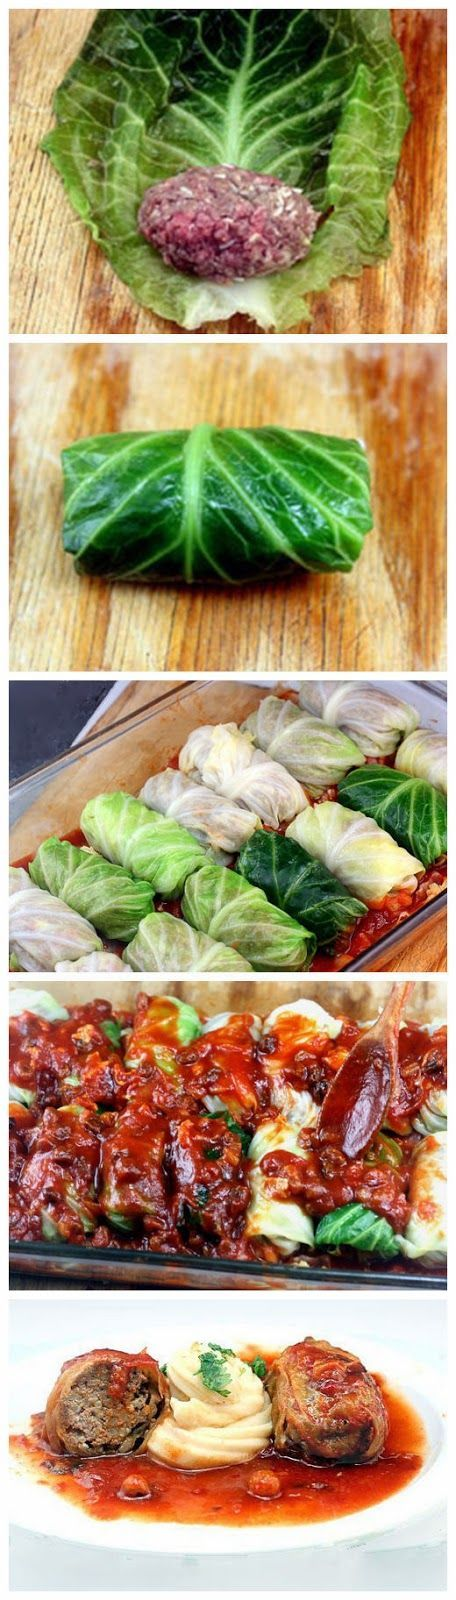 Stuffed cabbage for low sodium diet